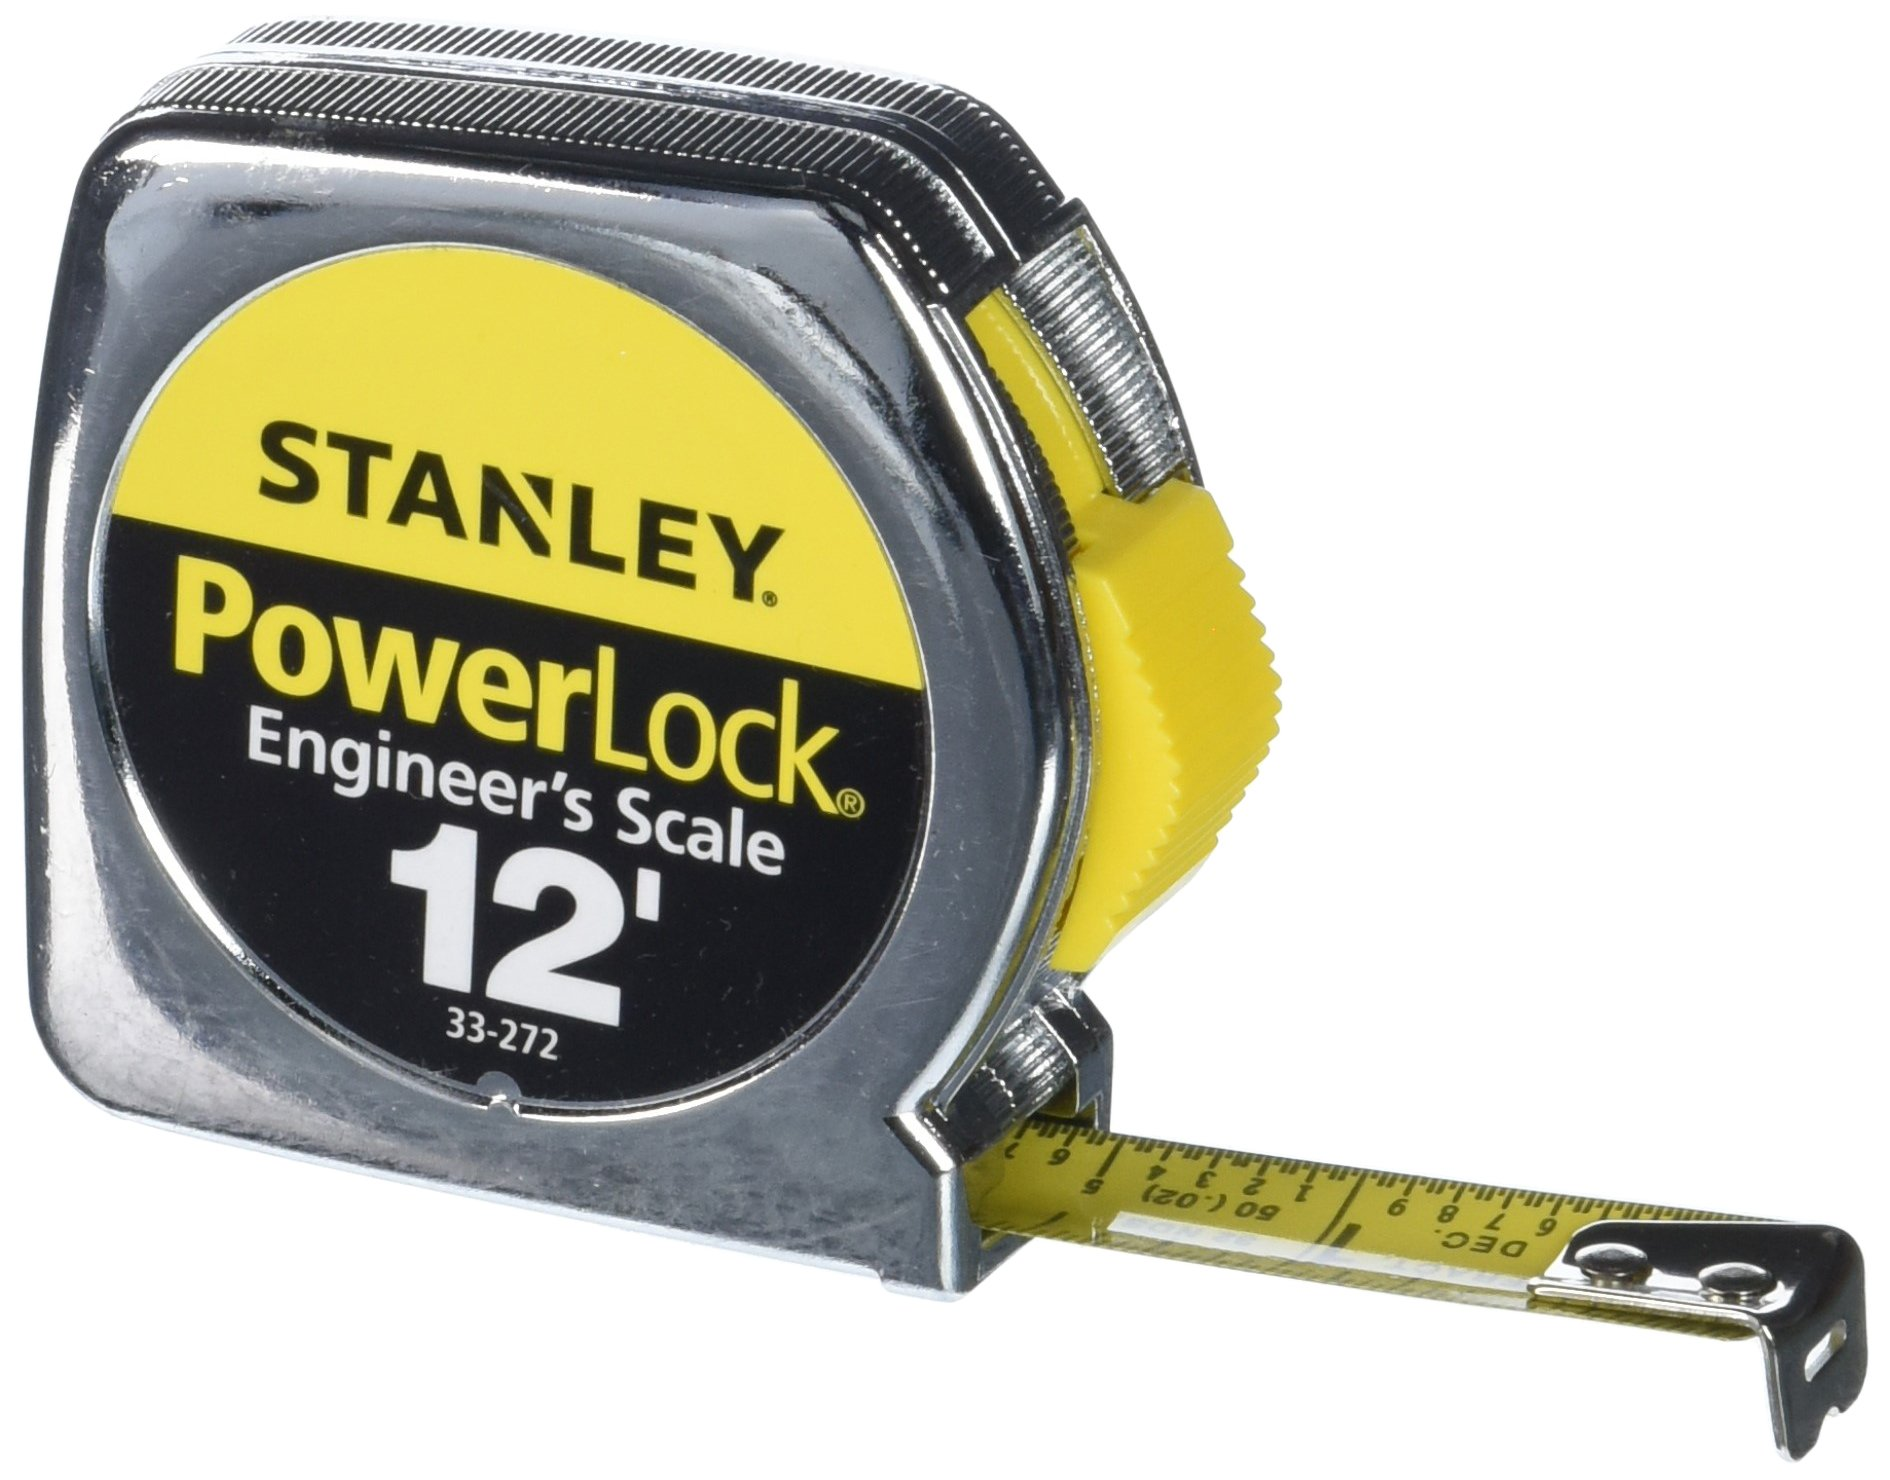 Stanley 33-272 12-by-1/2-Inch Heavy-Duty Powerlock Engineer's Scale Tape Rule with Metal Case by Stanley